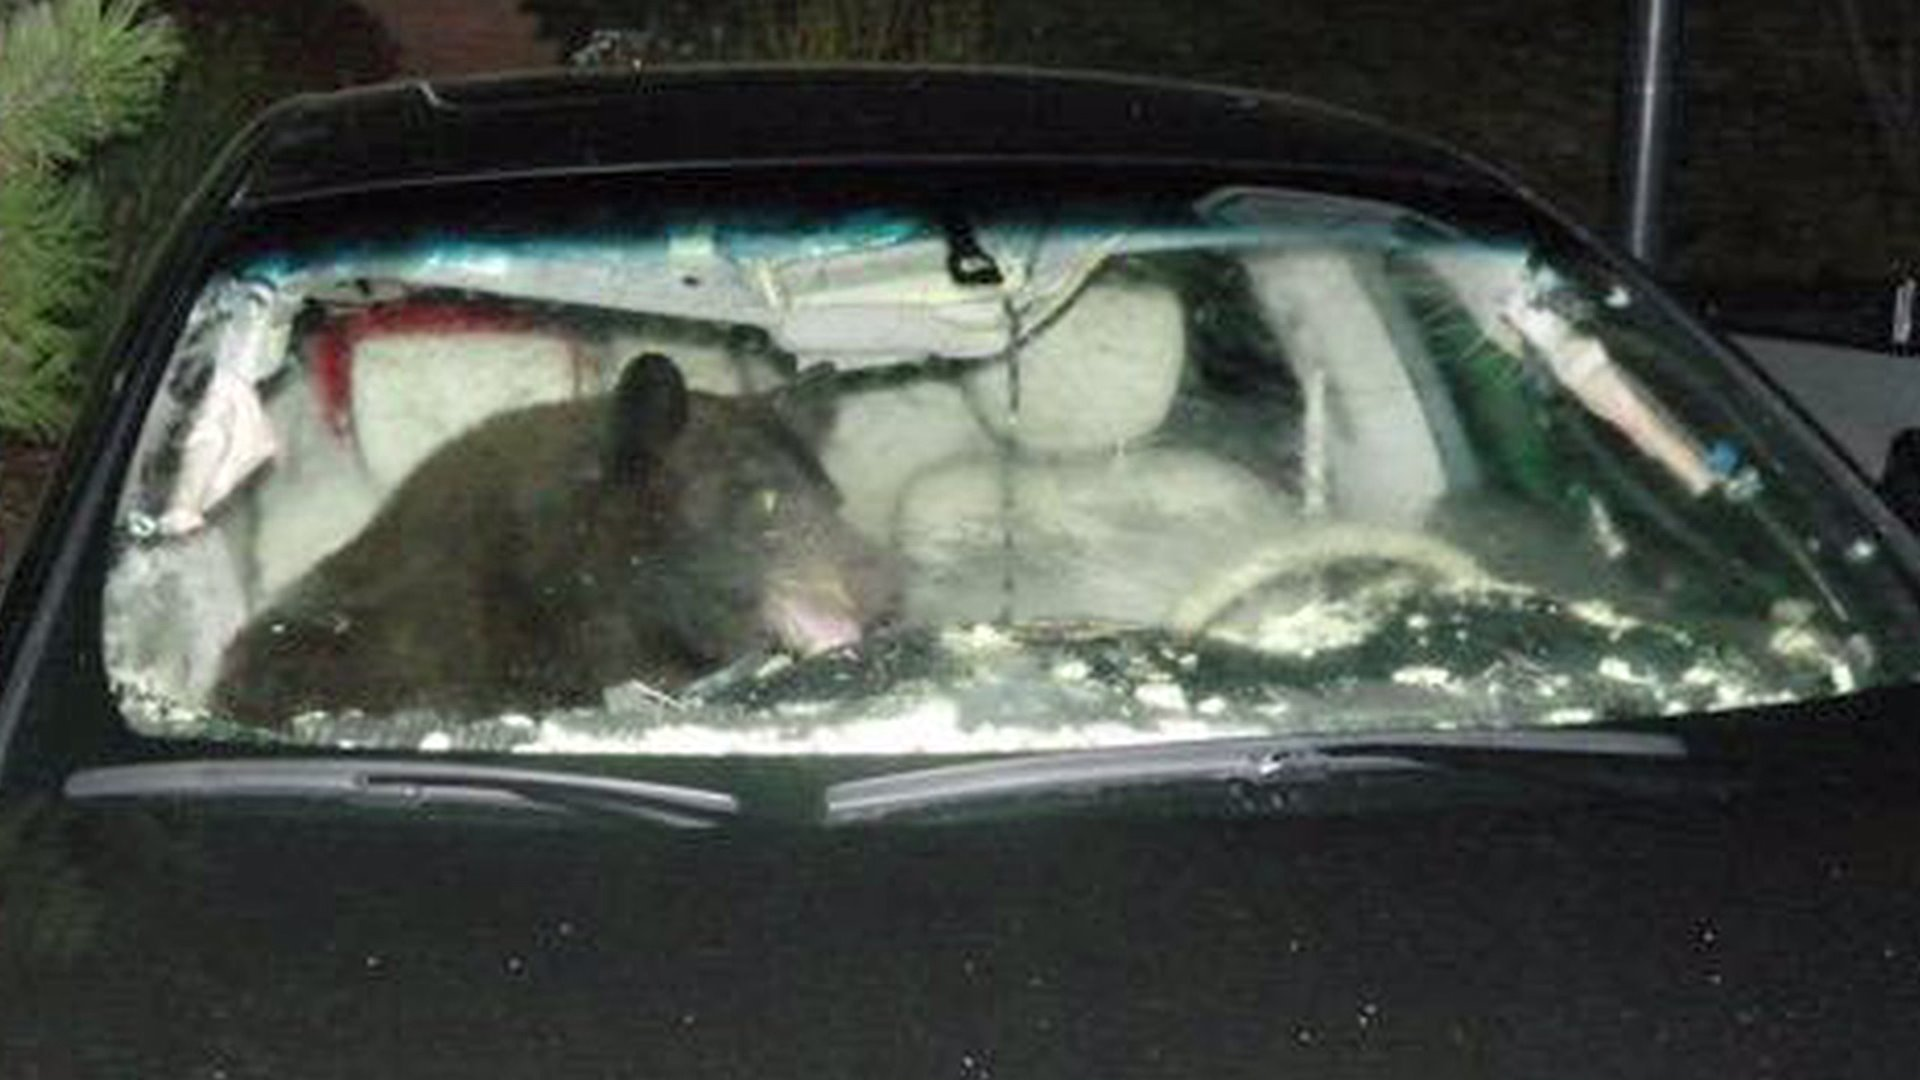 Black bear trapped in car in Castle Pines, Colo.